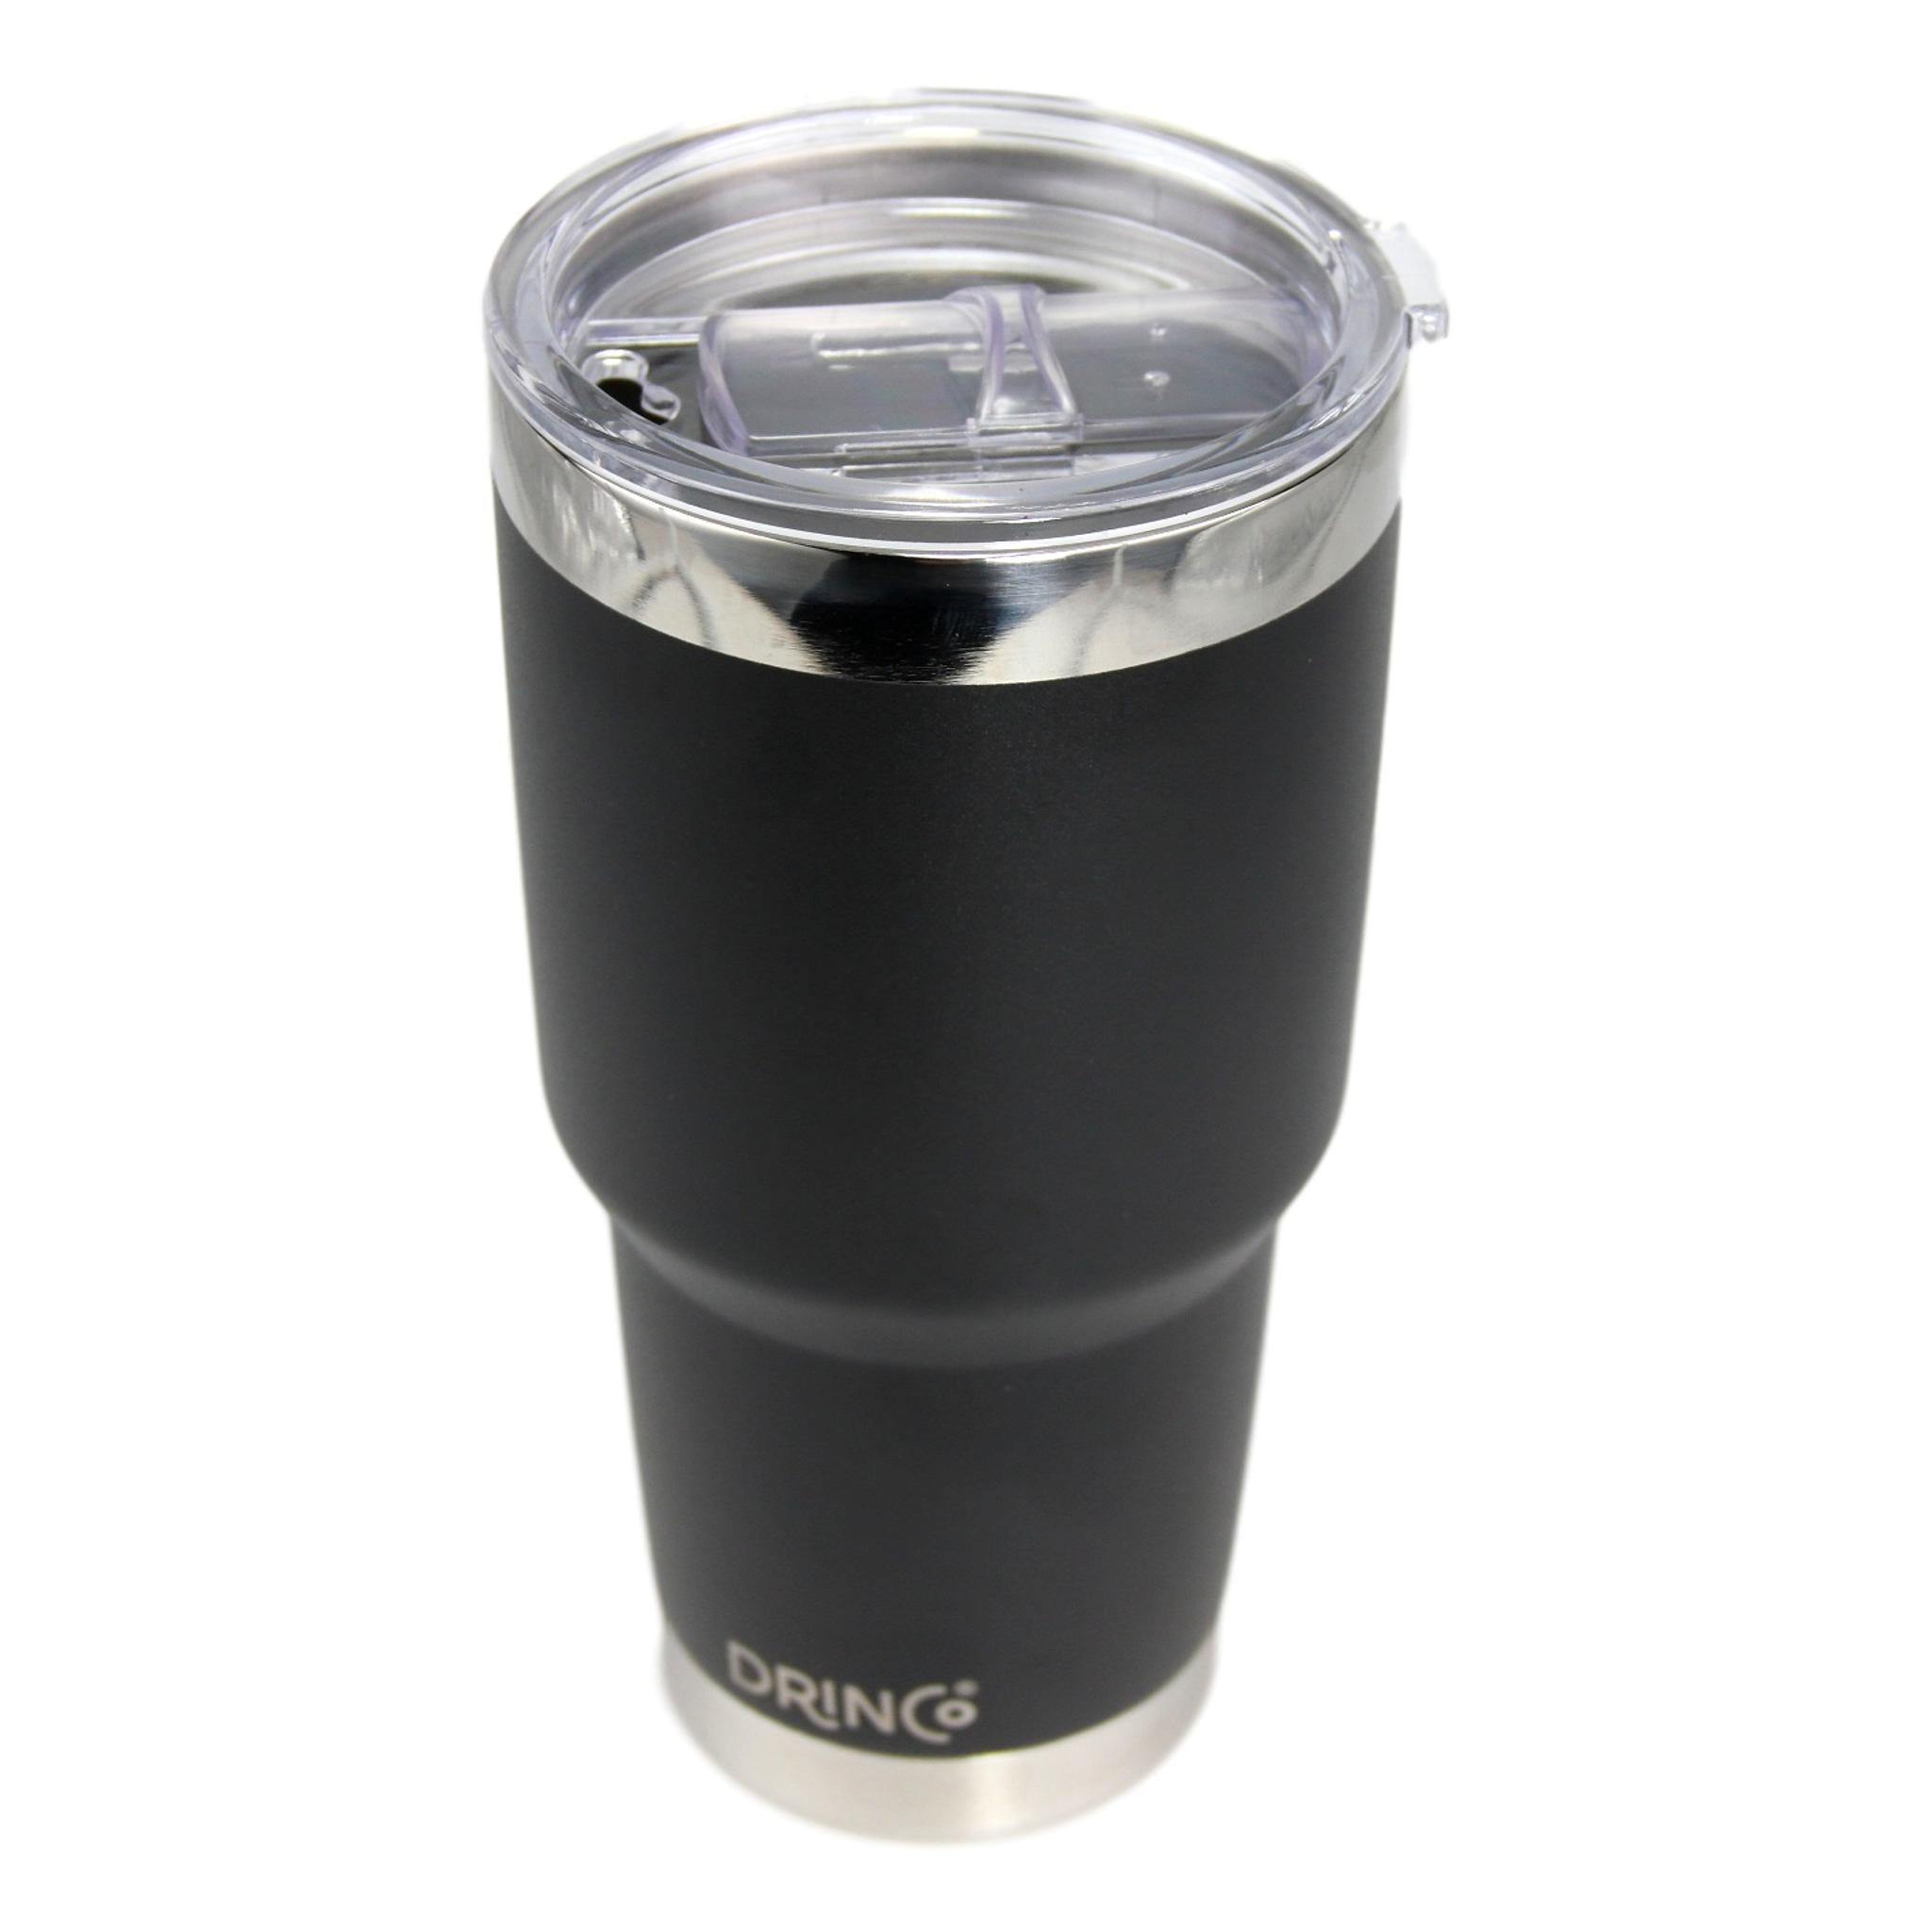 DRINCO® 30oz Insulated Tumbler Spill Proof Lid w/2 Straws (Black) - Cream and Sugar Coffee House & Brewing Co.